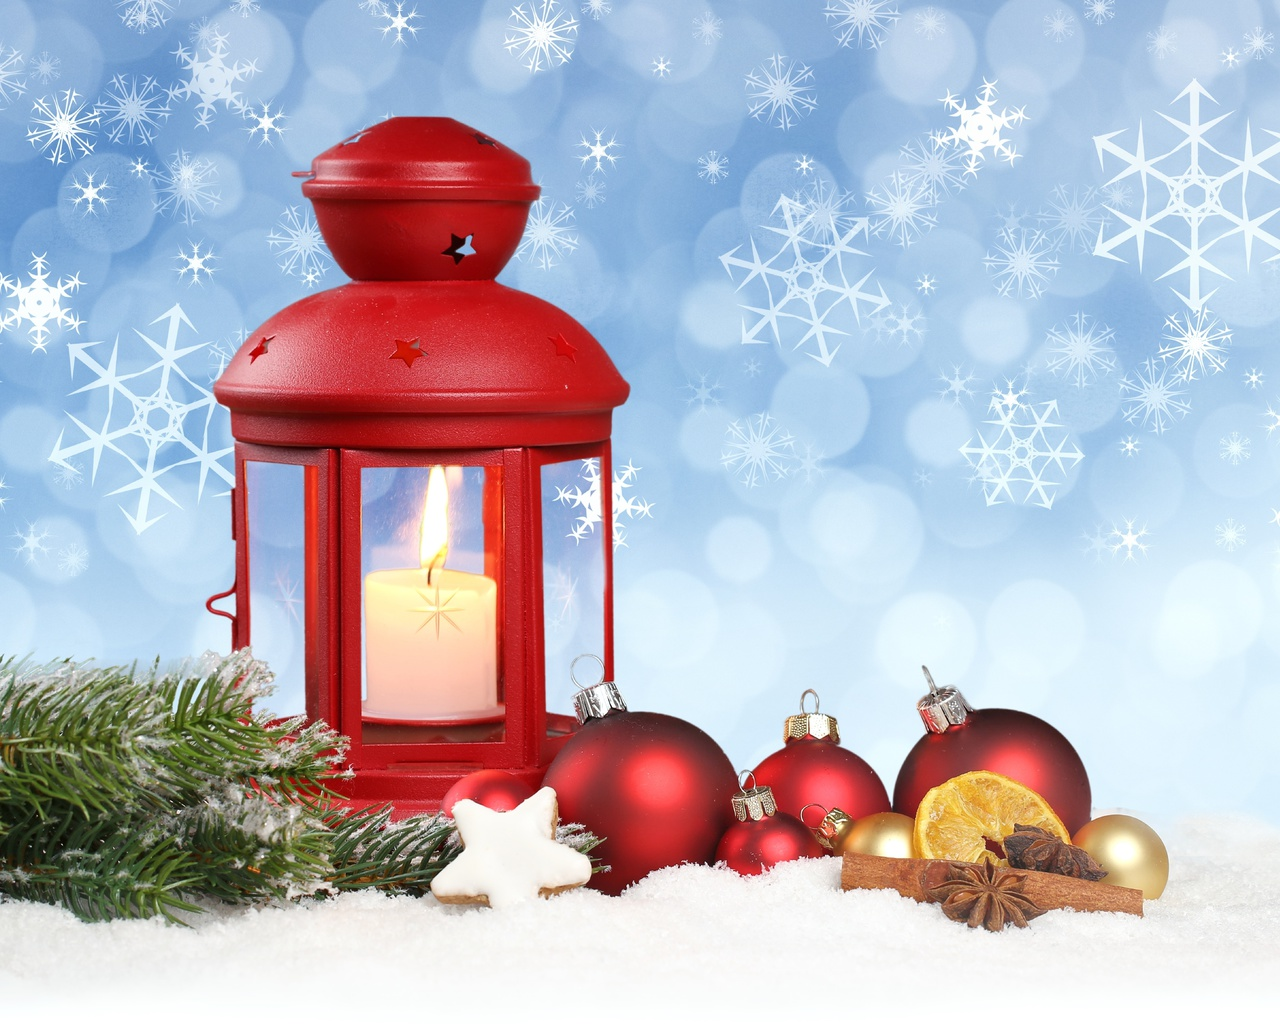 merry christmas, ornaments, новый год, snow, New year, balls, lantern, stars, snowflake